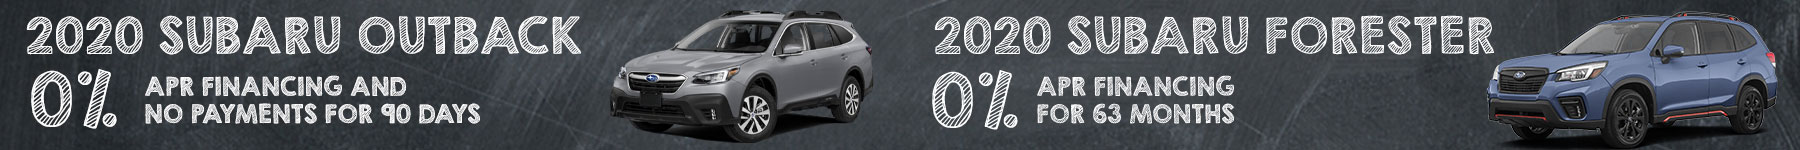 get 0% APR Financing for 63 months on all 2020 Subaru Outback and Subaru Forester